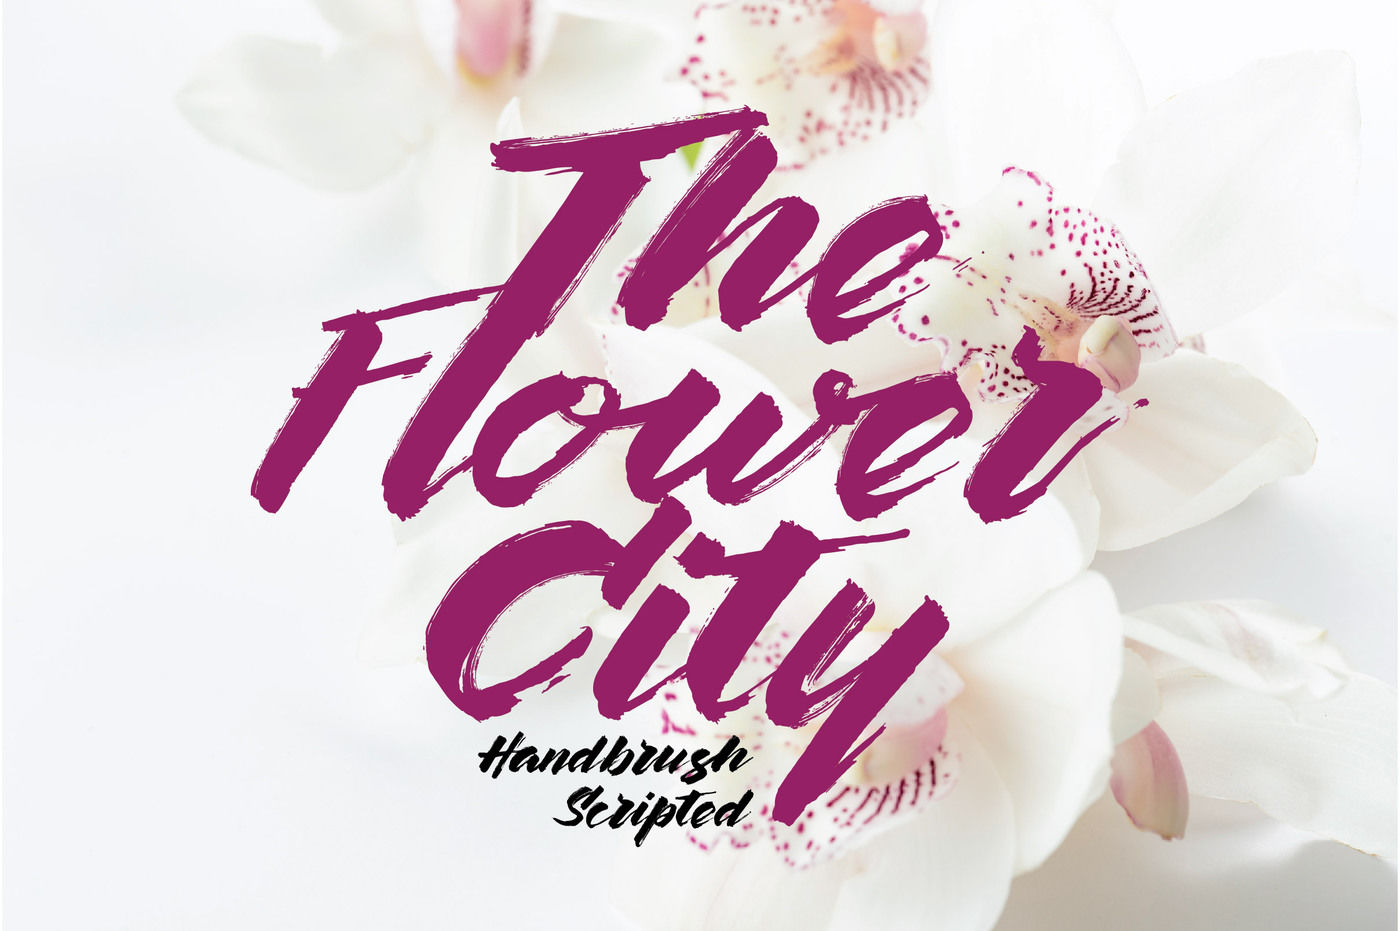 The-Flower-City-Font